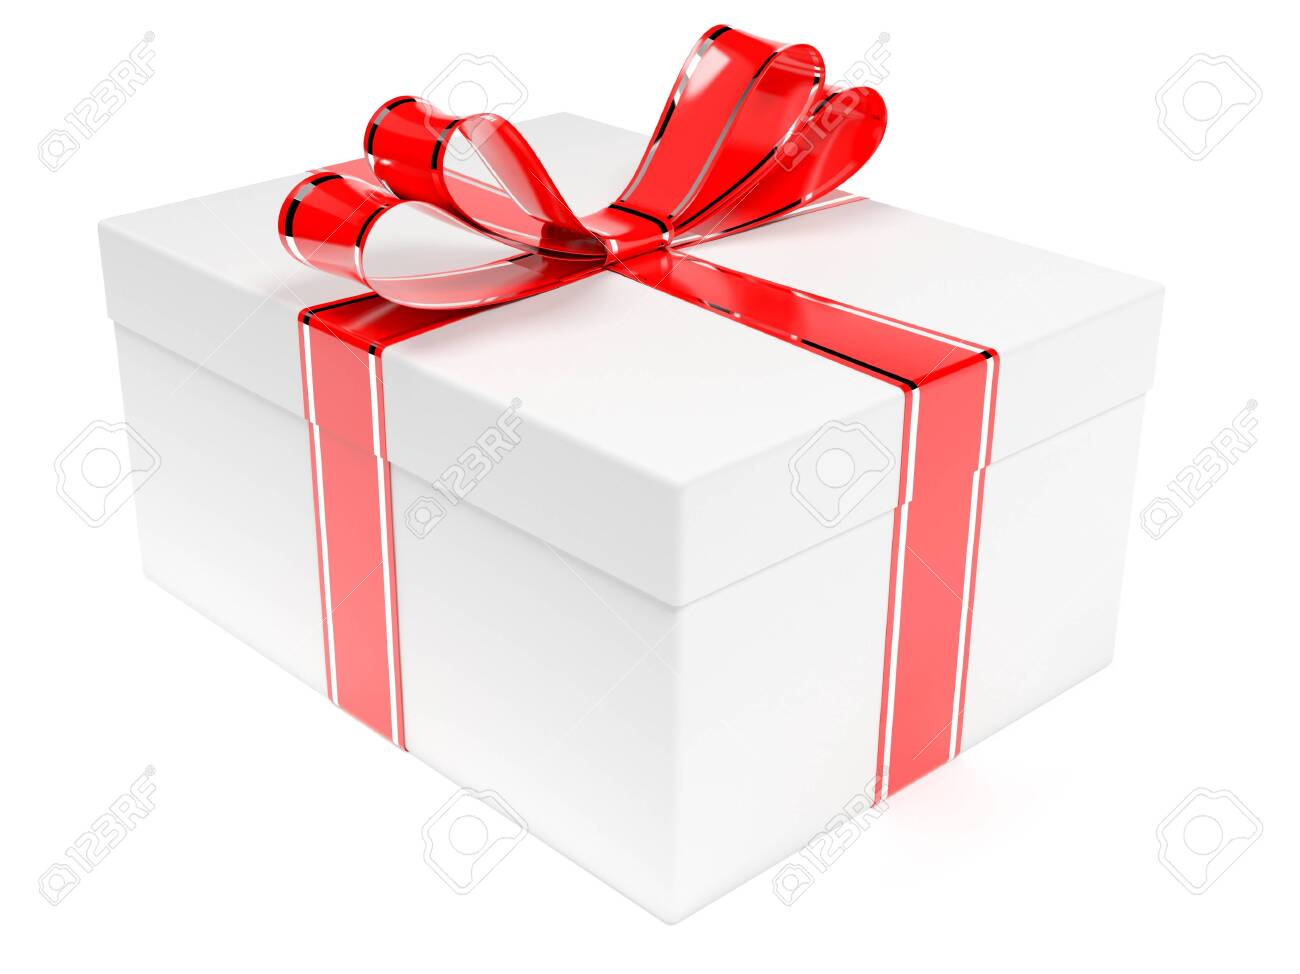 Gift box decorated with shiny red ribbon. 3d rendering illustration isolated on white background - 150233112